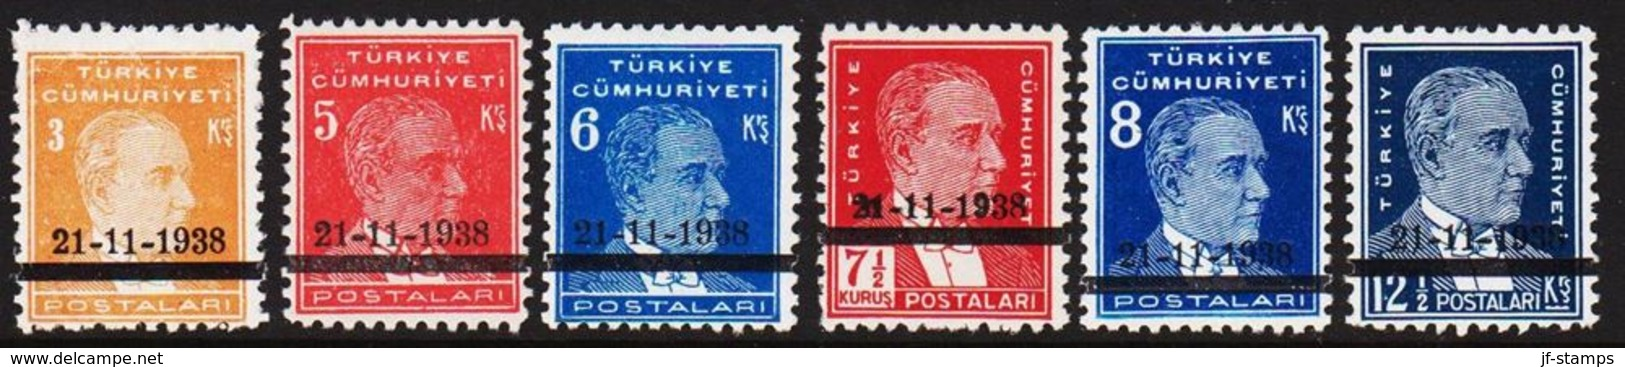 1938. 21-11-1938. Complete Set With 6 Stamps. (Michel 1041-1046) - JF303702 - Nuevos